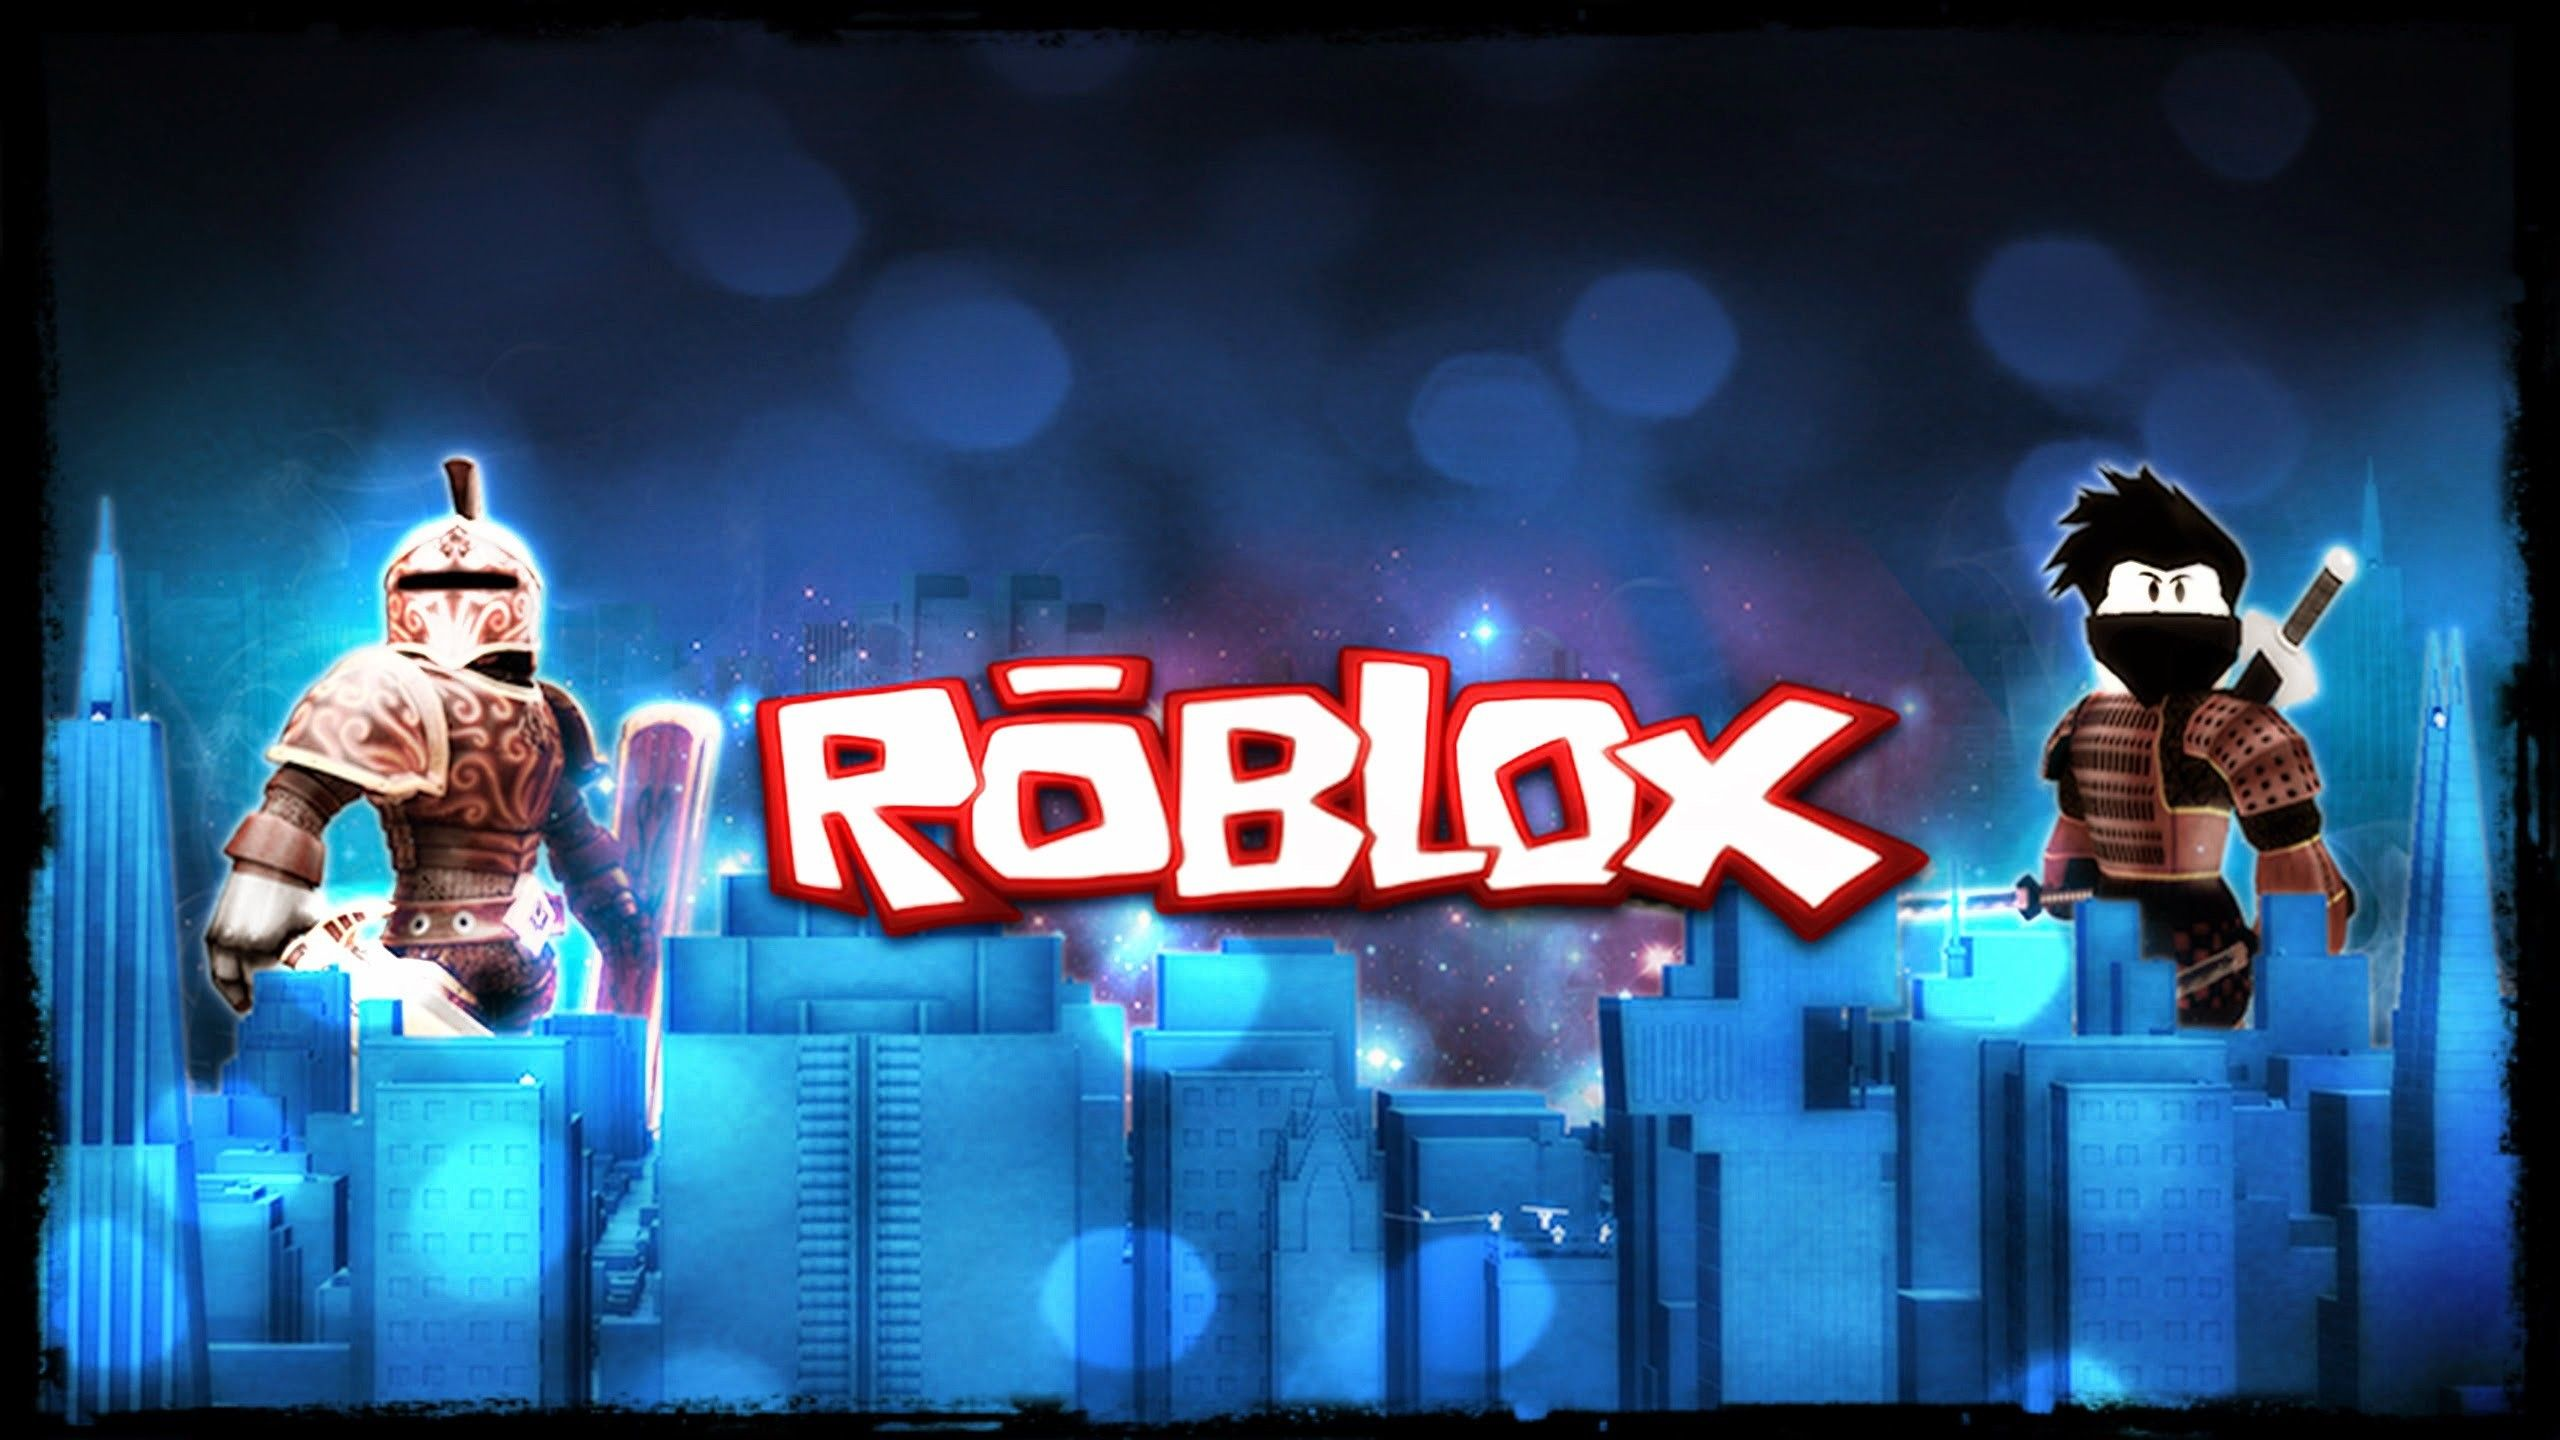 2560x1440 9 Best Roblox Posters And Wallpaper Images On